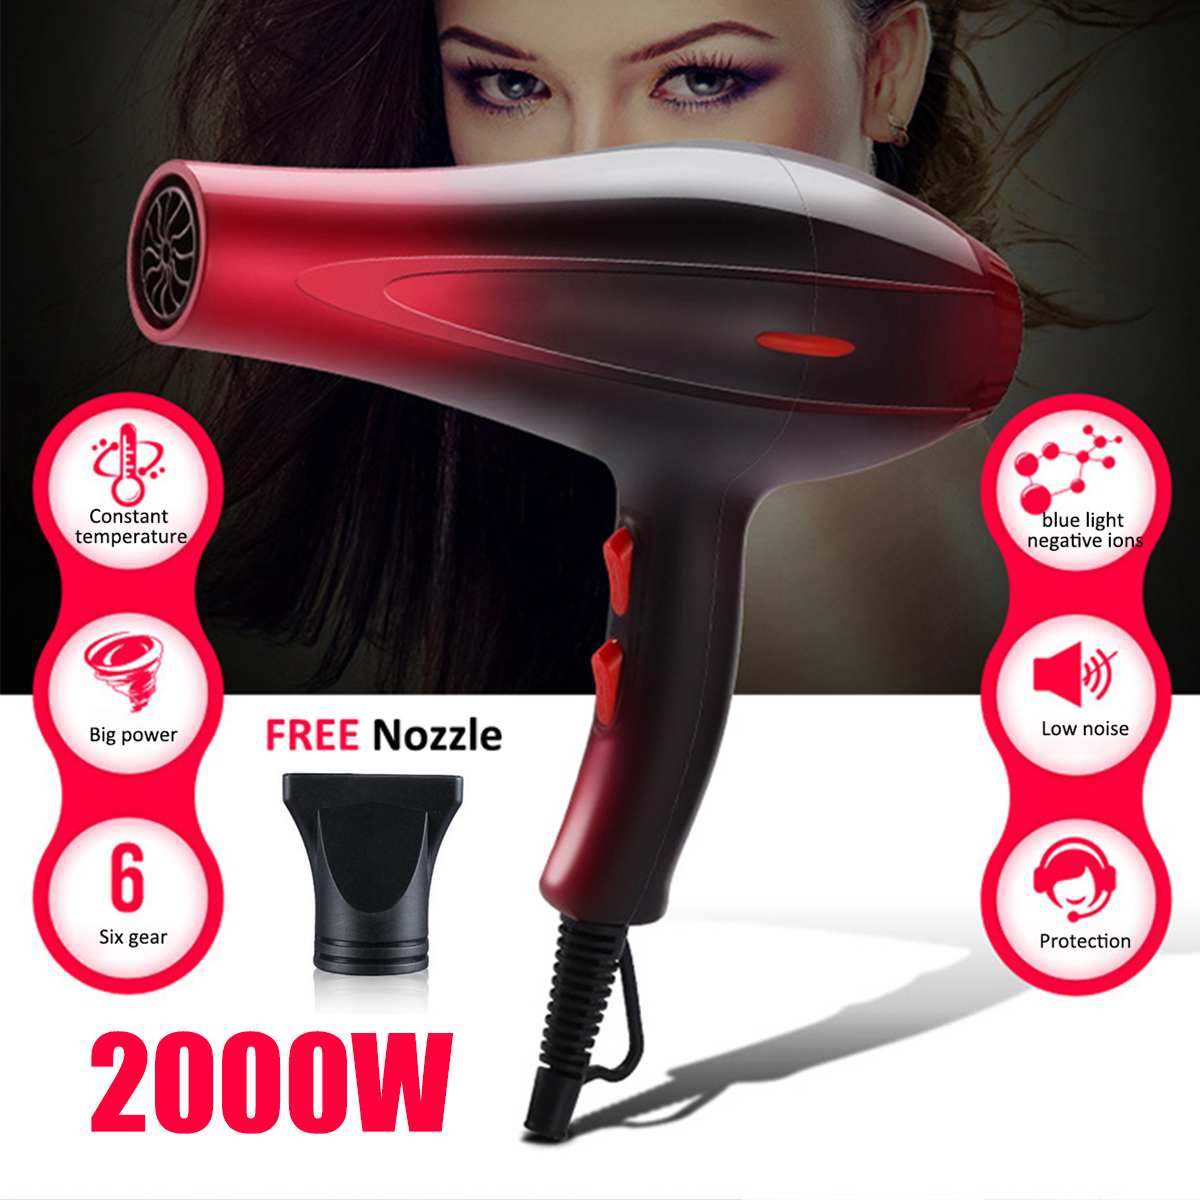 Professional Strong Power 2000W Hair Dryer Hairdressing Electric Hair Blower Low Noise Hairdryer Quick Heat Dryer for Home SalonProfessional Strong Power 2000W Hair Dryer Hairdressing Electric Hair Blower Low Noise Hairdryer Quick Heat Dryer for Home Salon